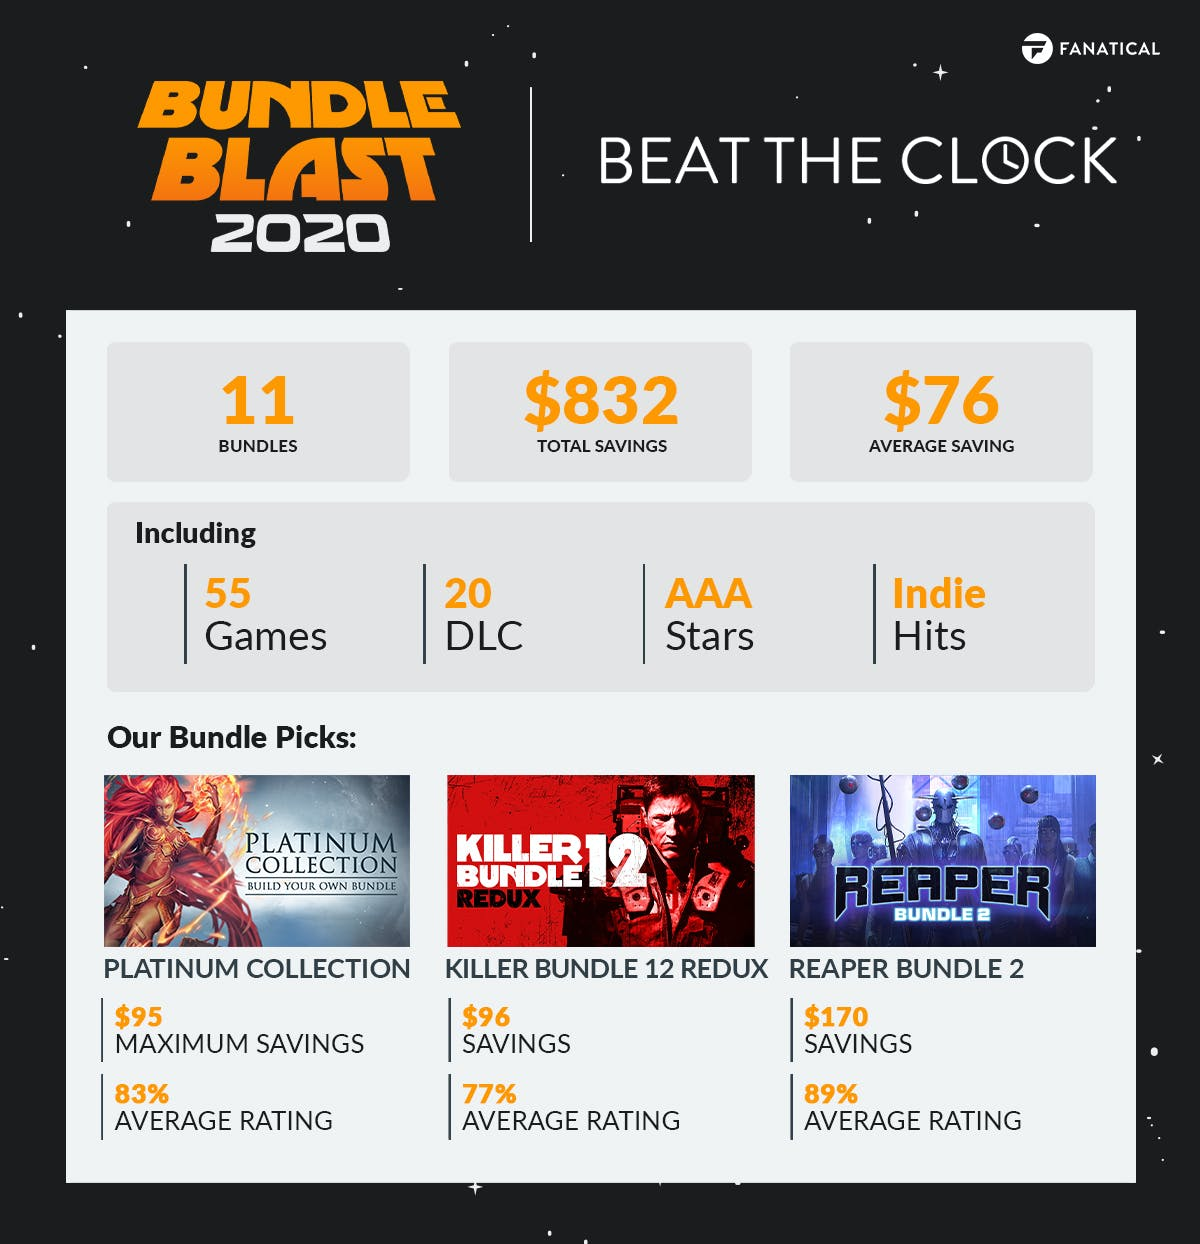 https://images.prismic.io/fanatical/f3ad64a2-1d9b-4f67-aa91-a04be1187b0e_BB2020BeattheClock-social-infographic-bundleroundup.jpg?auto=compress,format